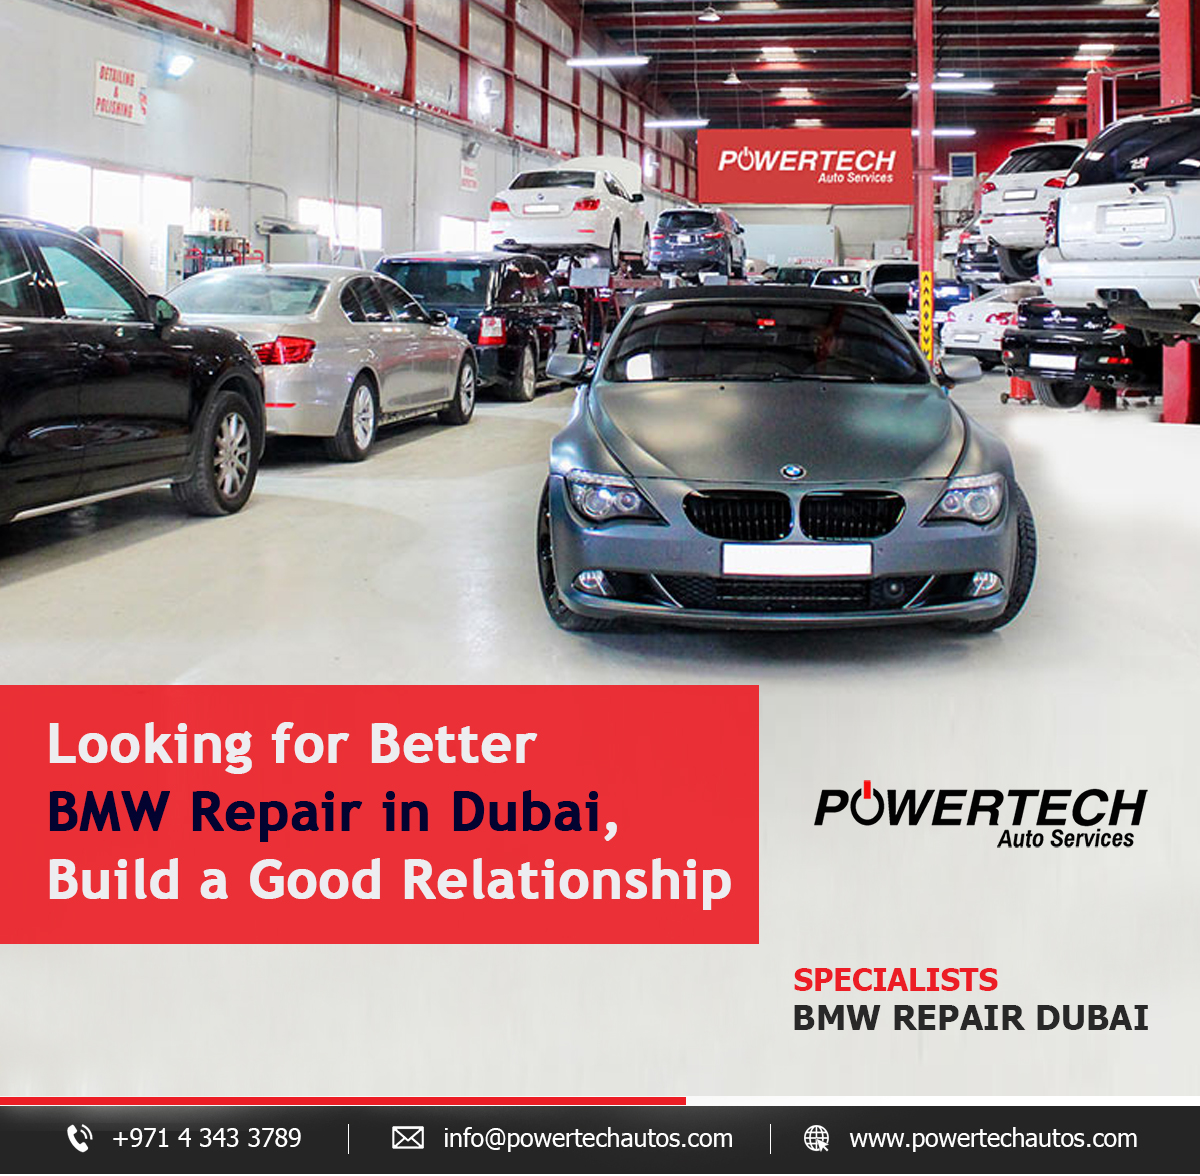 Looking for Better BMW Repair in Dubai, Build a Good Relationship! – Powertech Auto Services